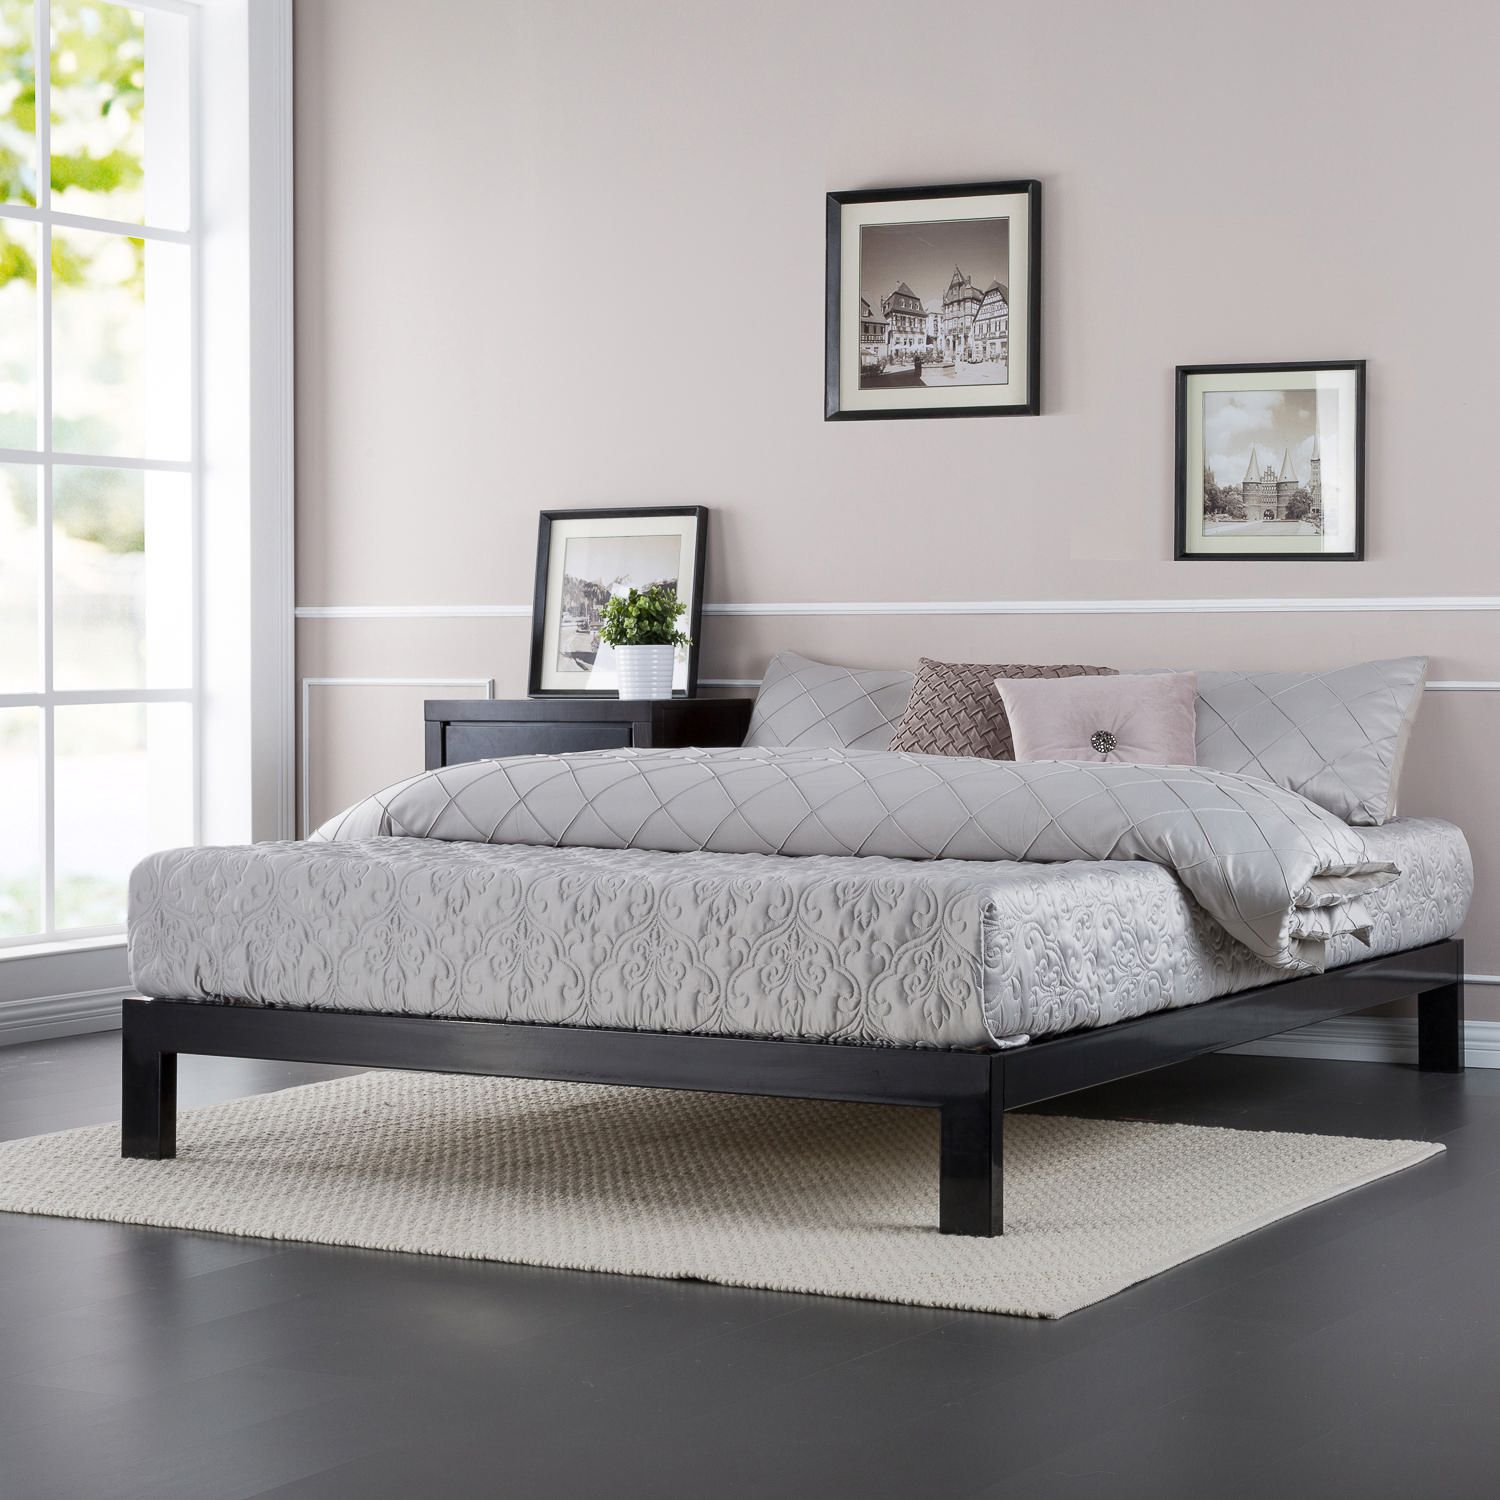 have bed hellogiggles easy under lifestyle these will you home resting decorating frames